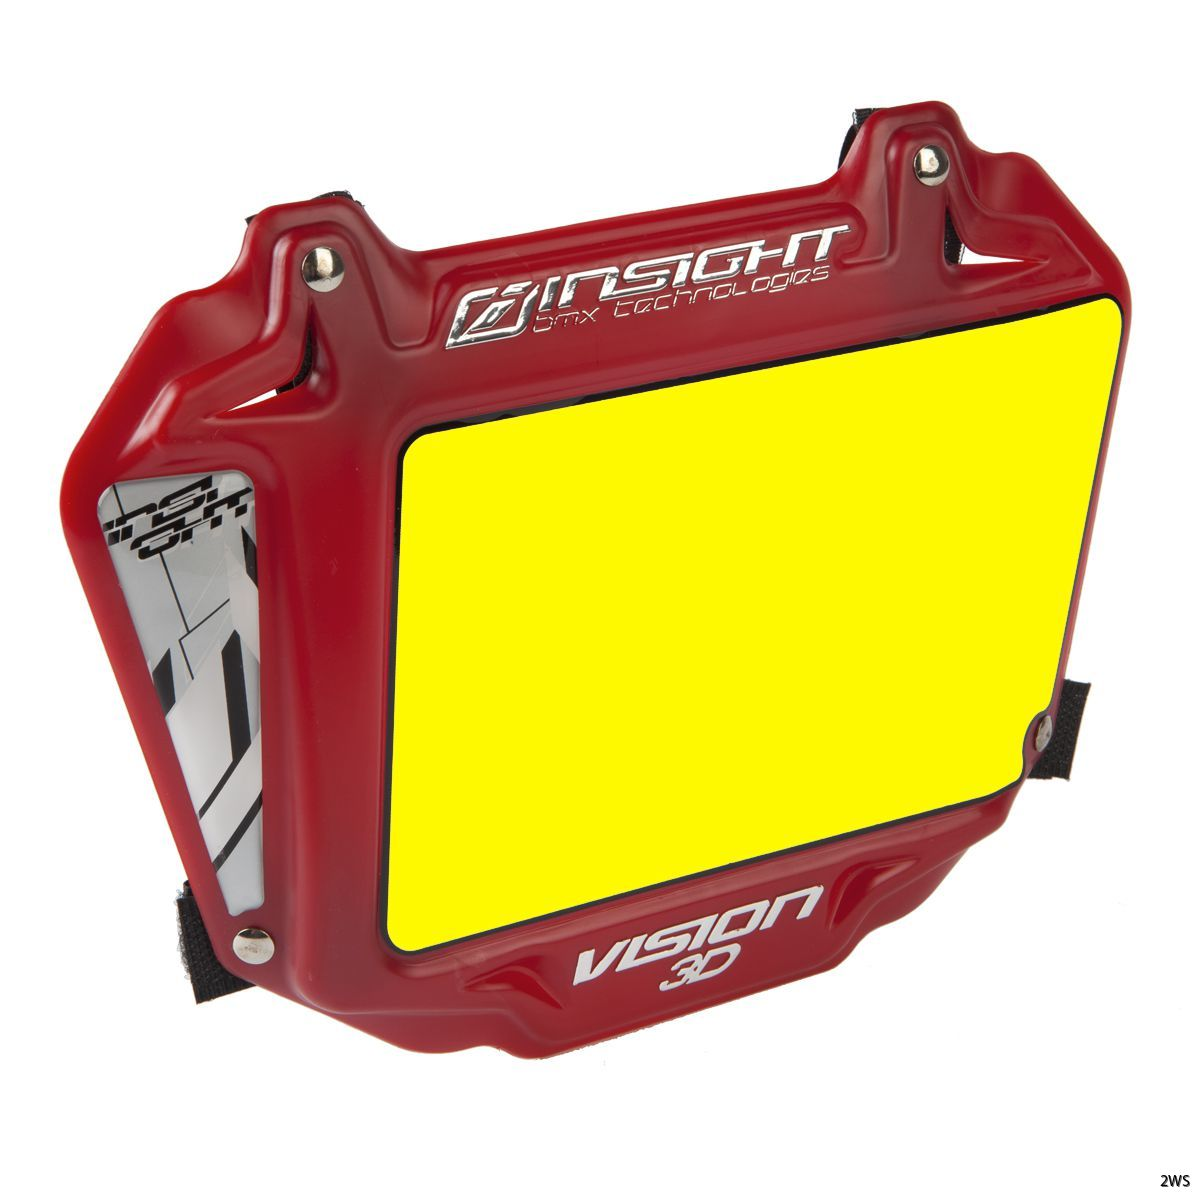 insight-number-plate-vision-3d-expert-yellow-bg_röd